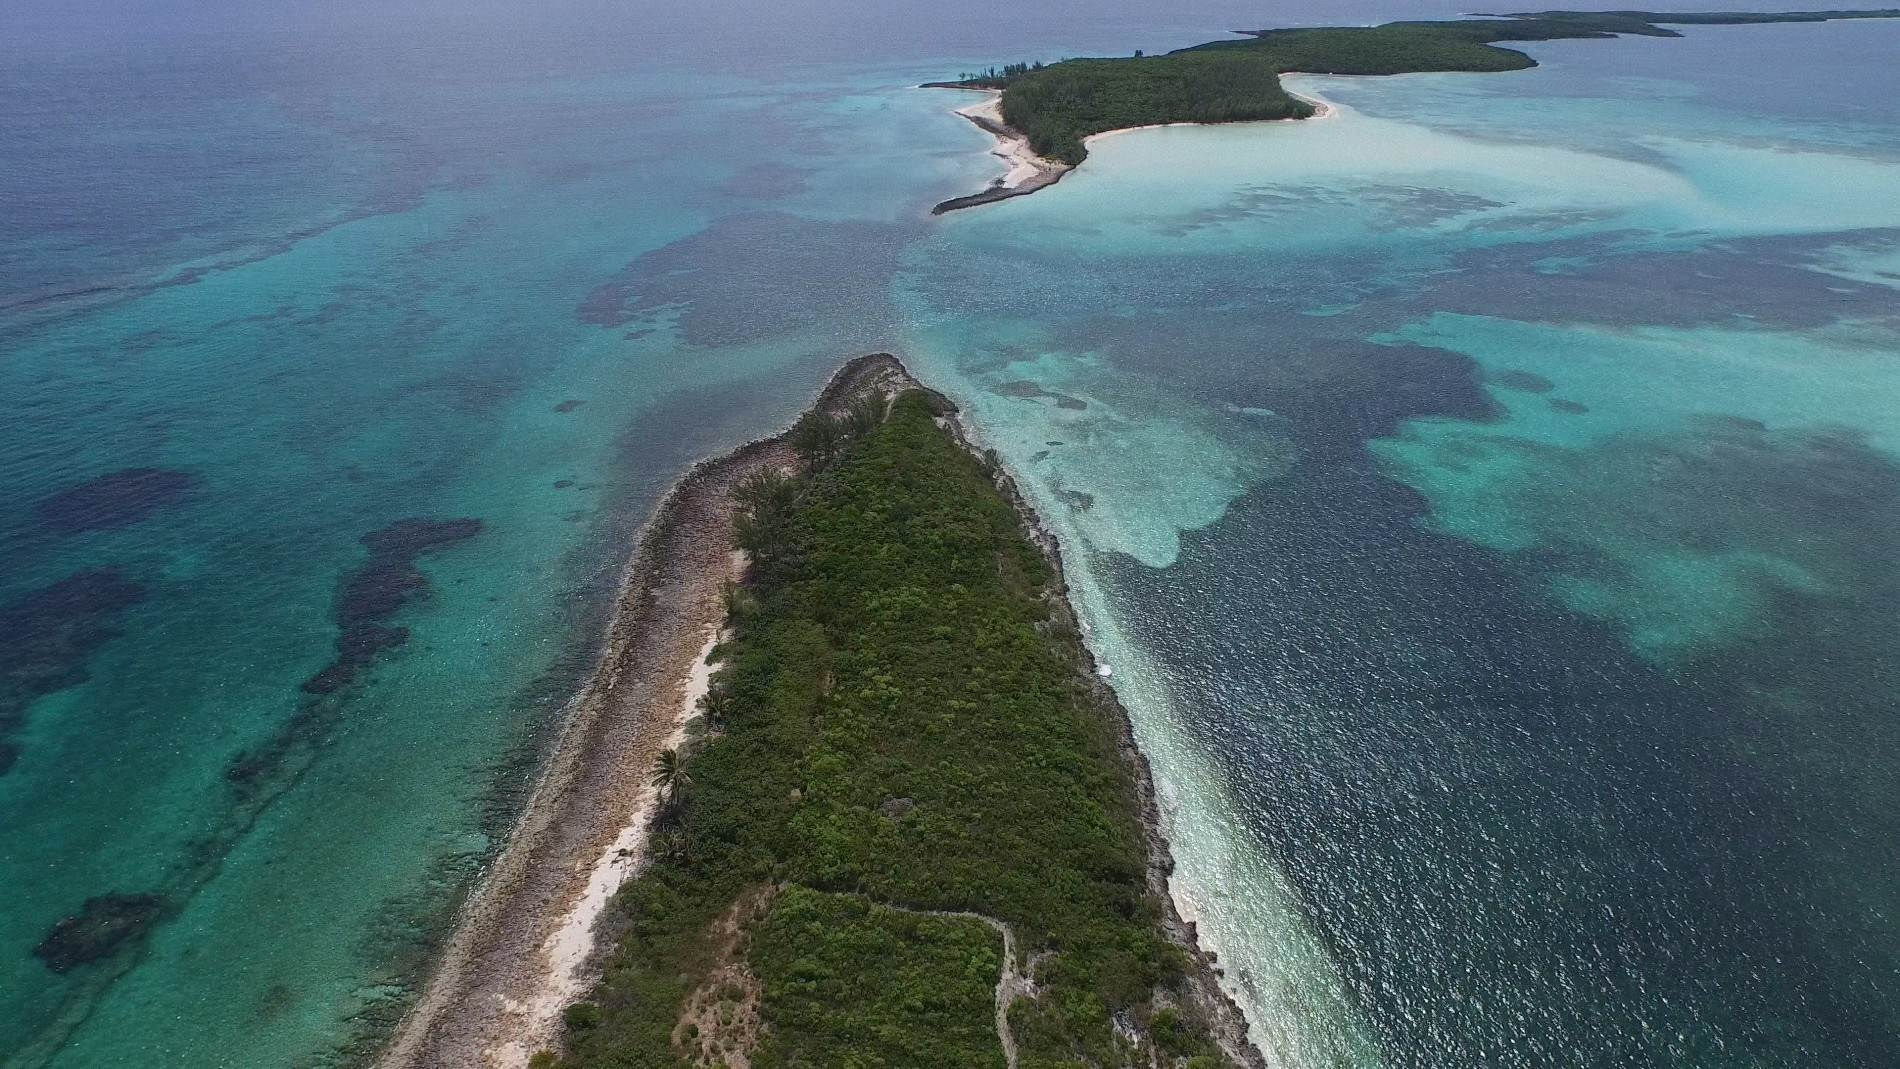 23. Private Islands for Sale at Pierre Island, A Perfect Private Retreat Island Near Harbour Island - MLS 40806 Harbour Island, Eleuthera, Bahamas